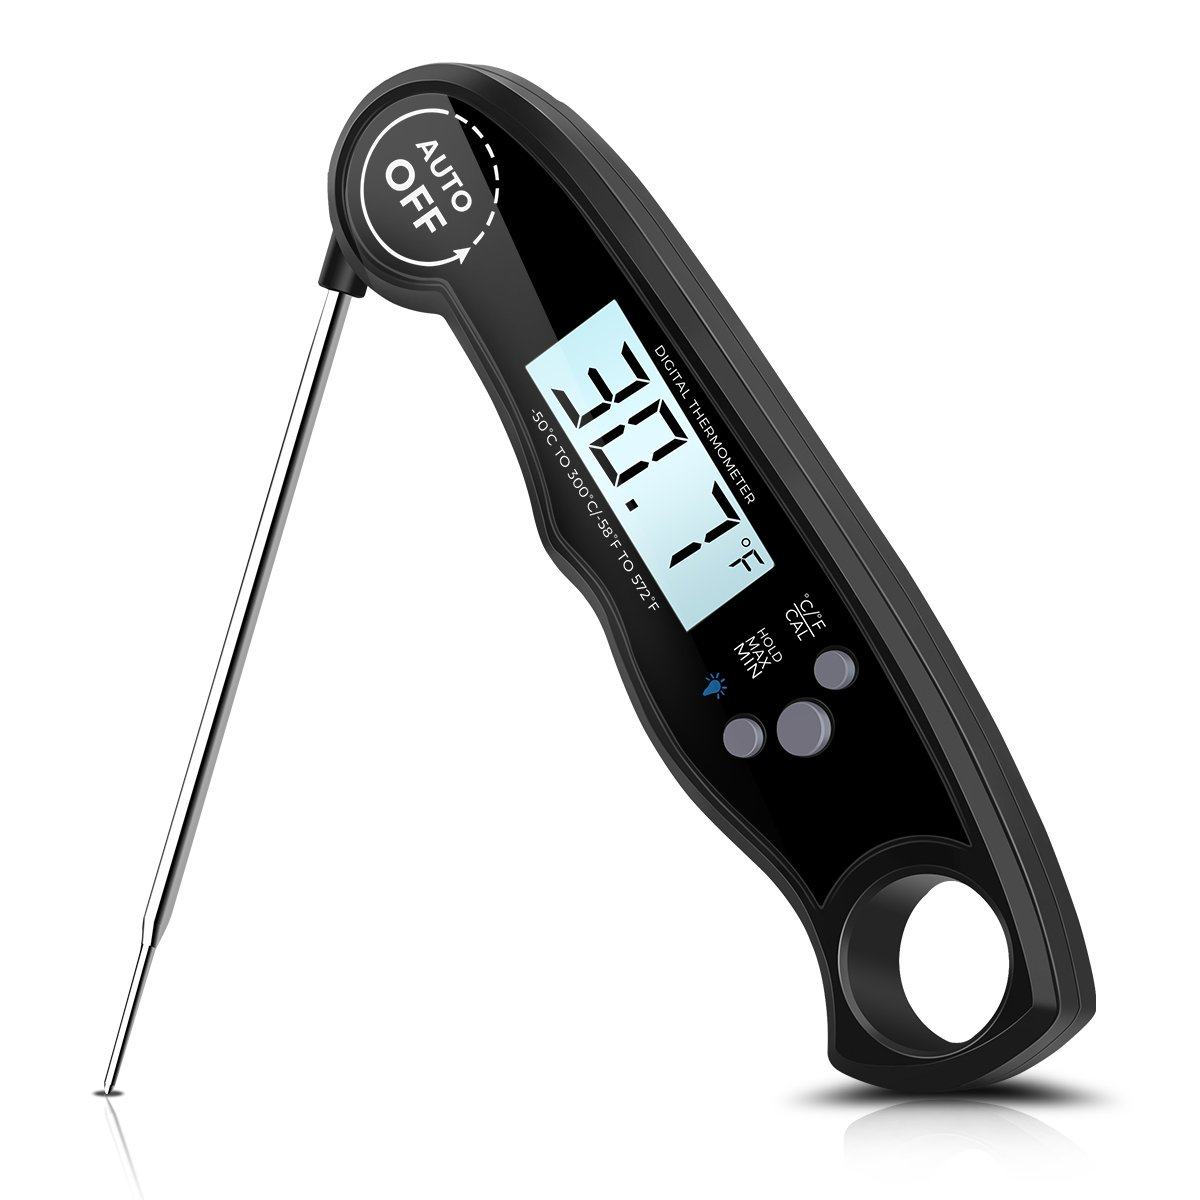 Digital Meat Thermometer Instant Read 3-4s Electronic Waterproof Food Thermometer with Probe for Candy BBQ Grill Kitchen Smoker Cooking